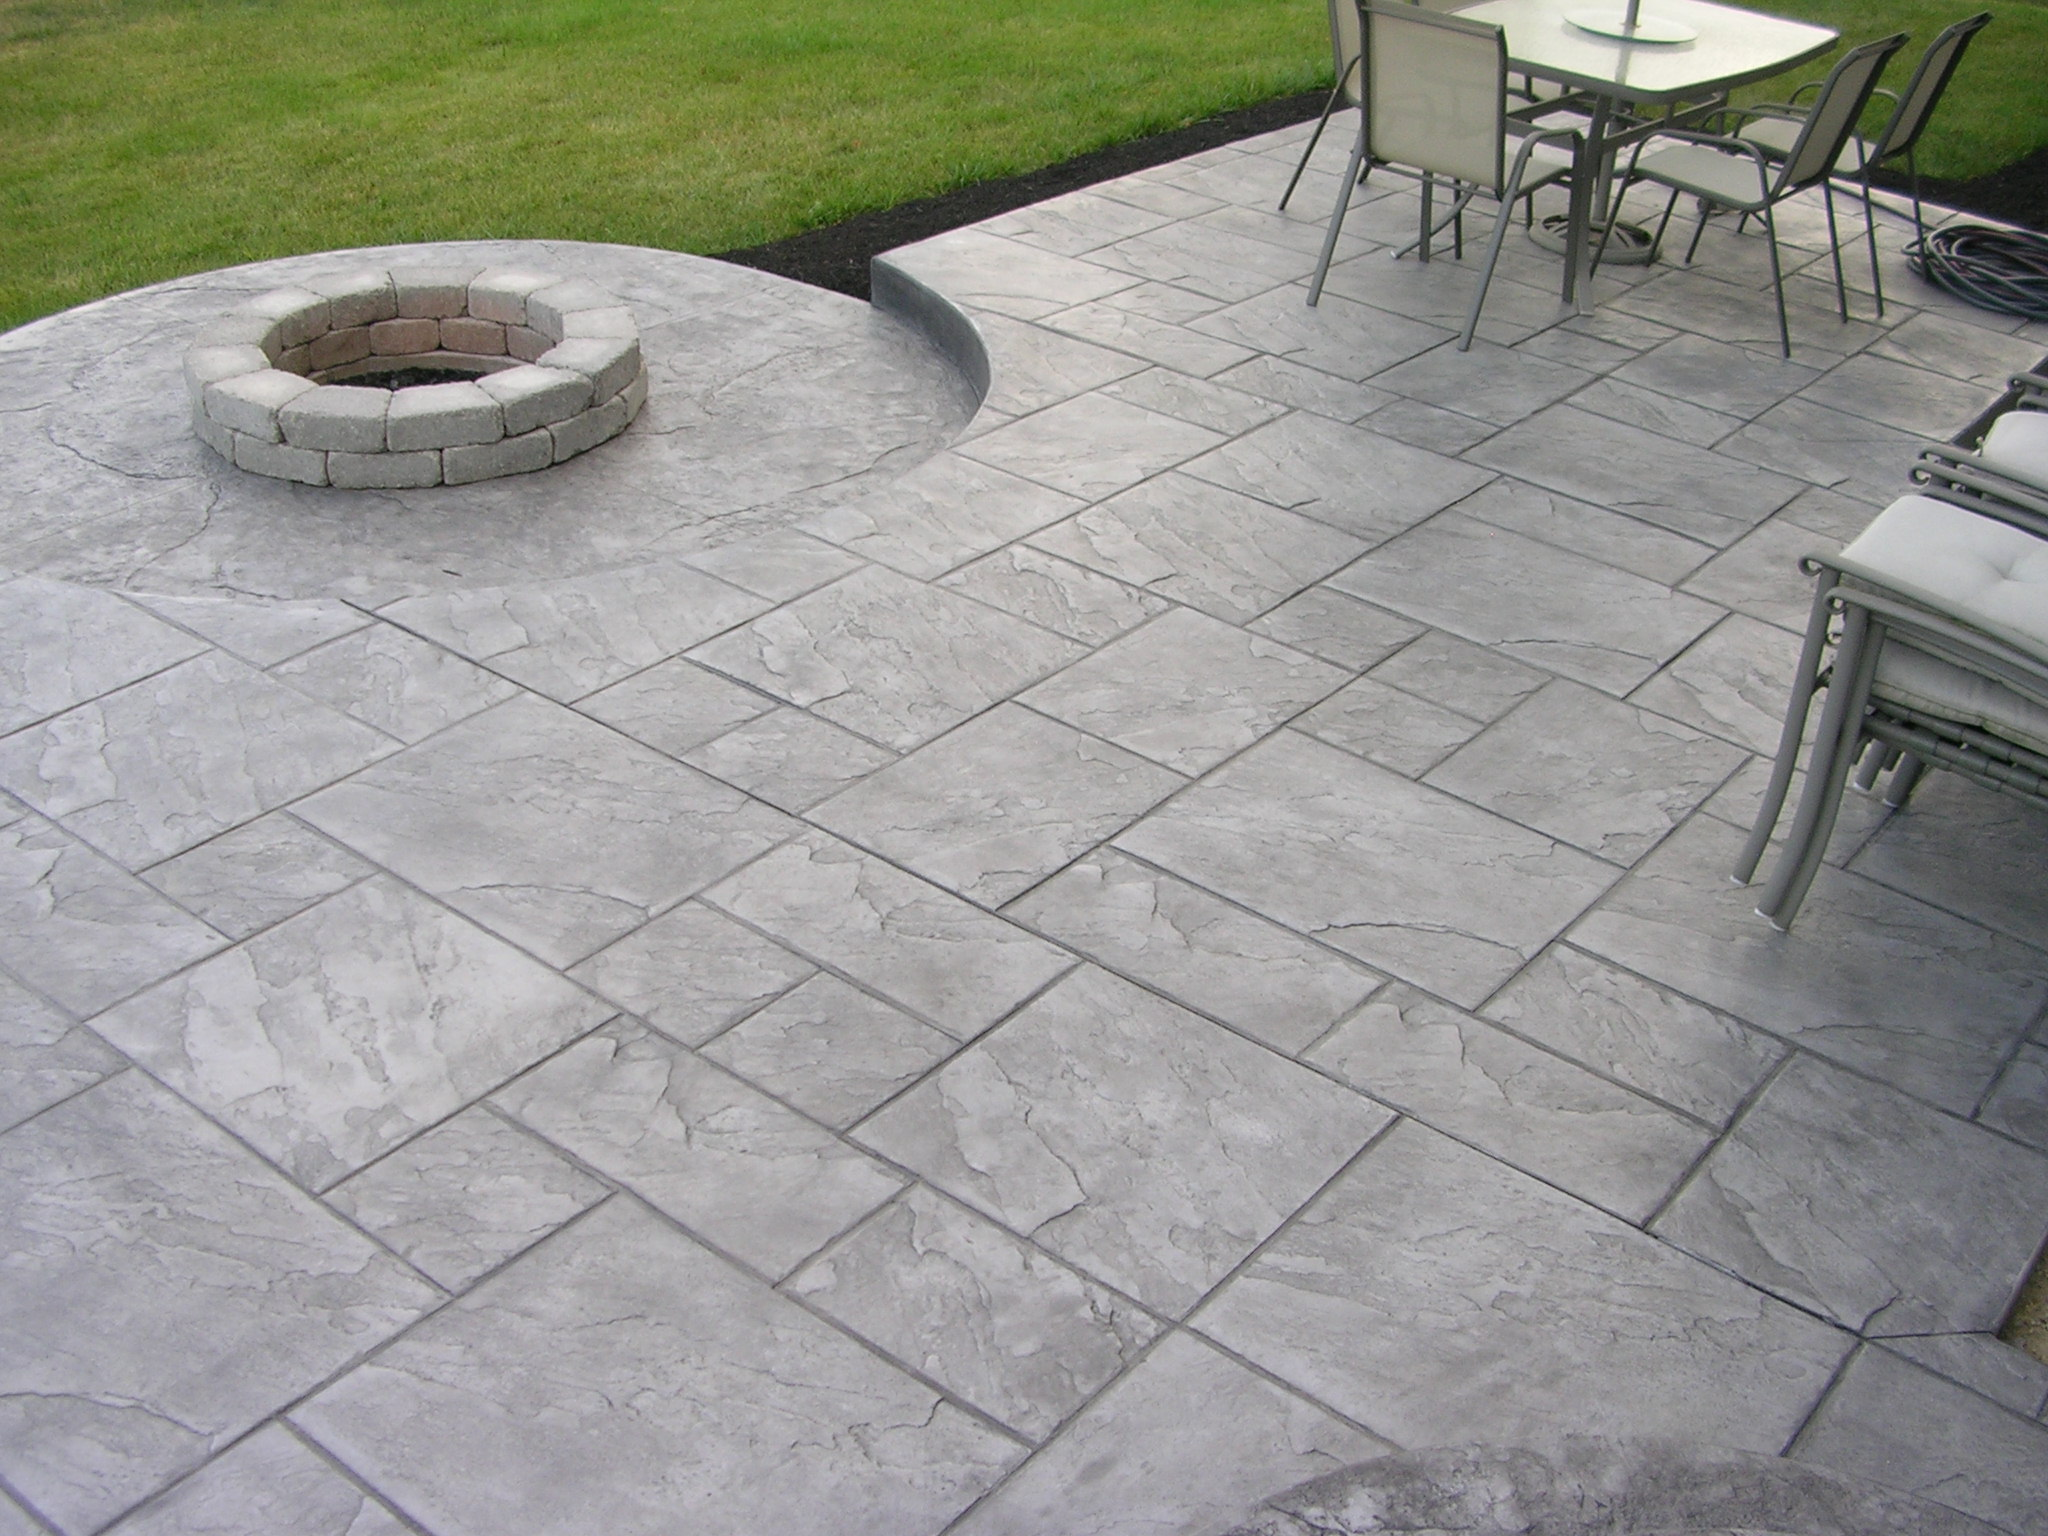 Estimates On Stamped Concrete Services